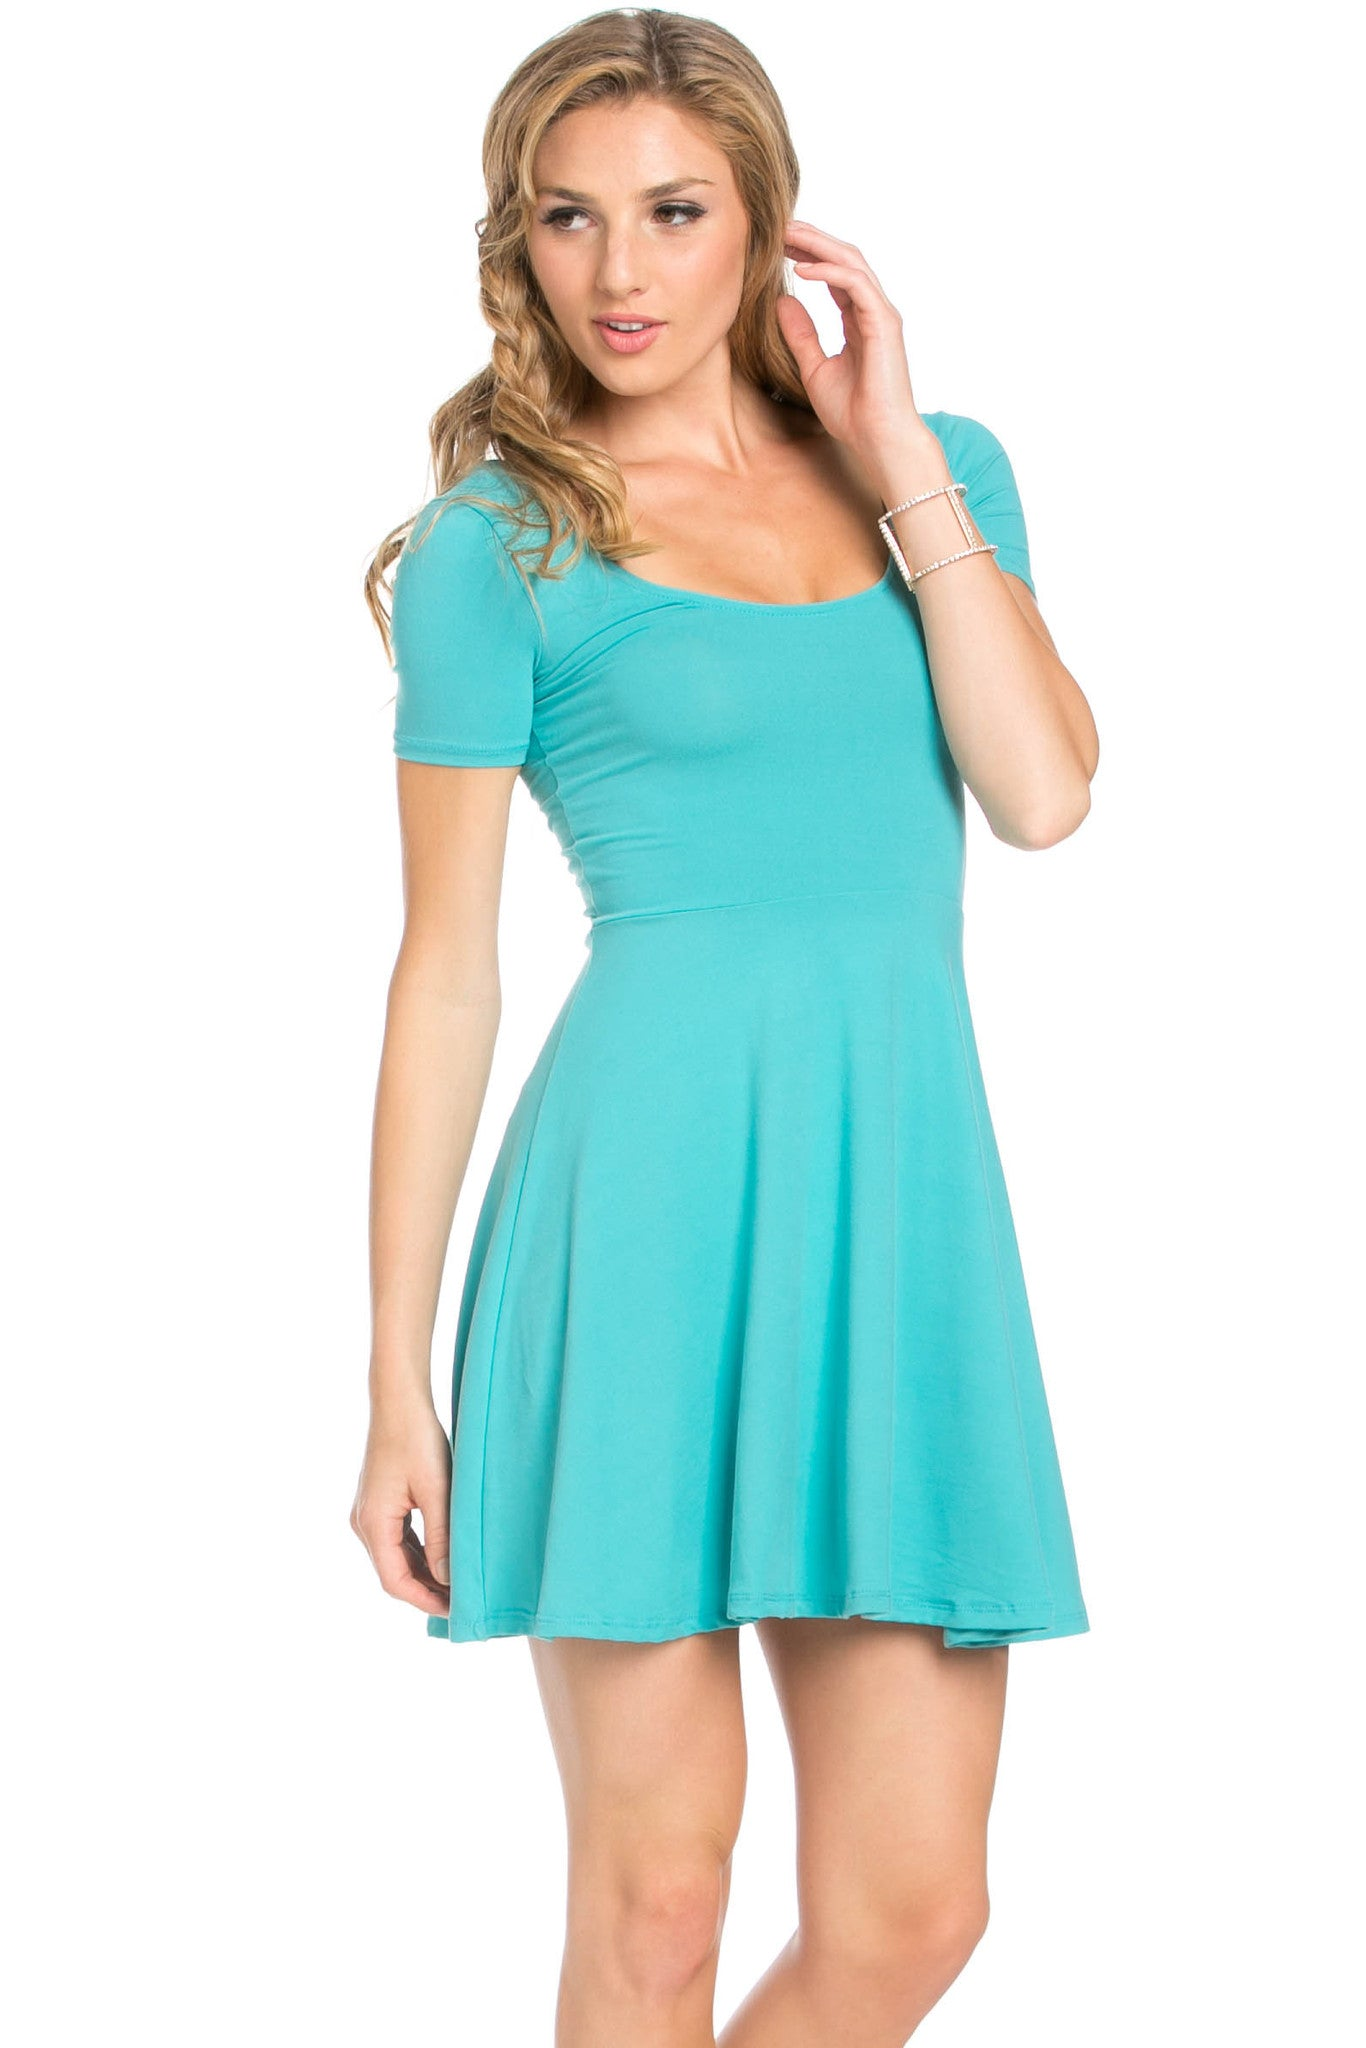 Micro Suede Jade Mini Dress - Dresses - My Yuccie - 4